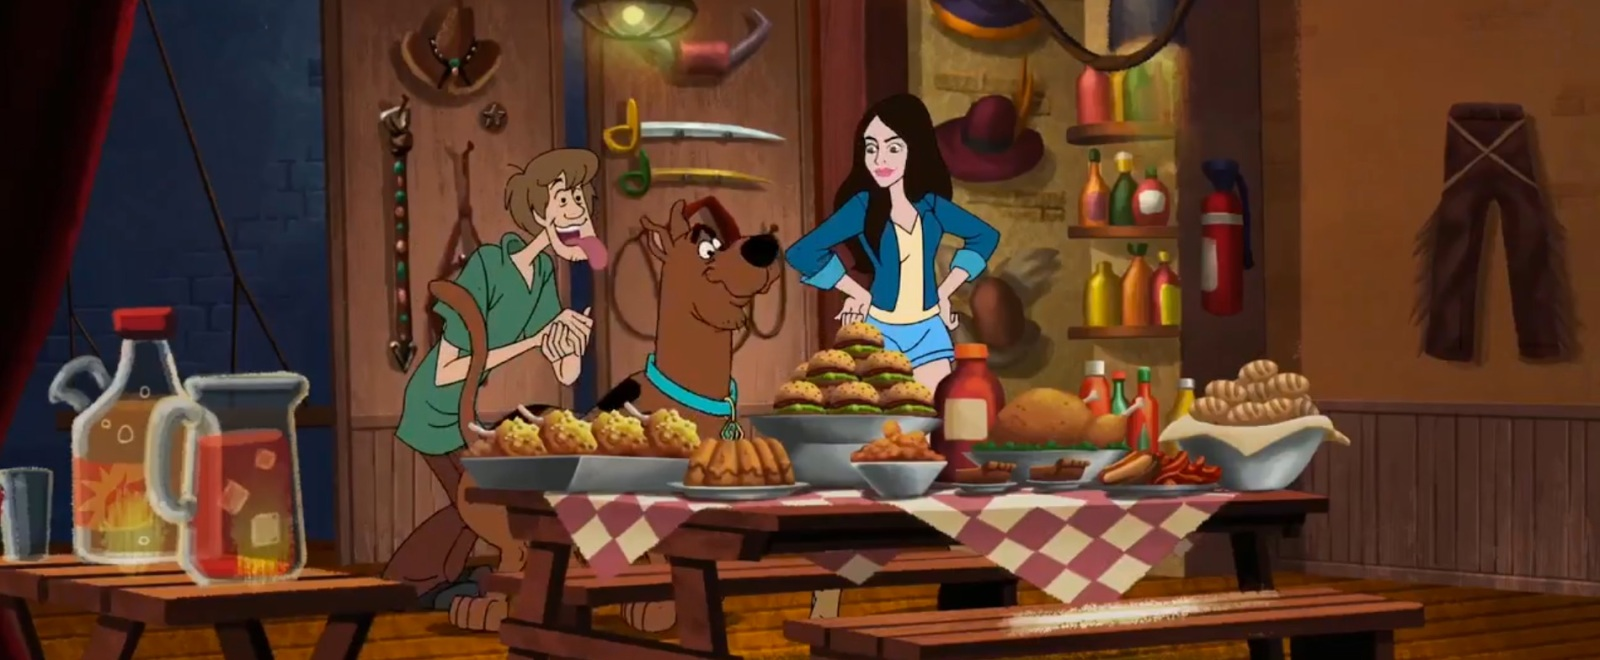 Kacey Musgraves Guests On Scooby Doo To Get Help With A Mystery